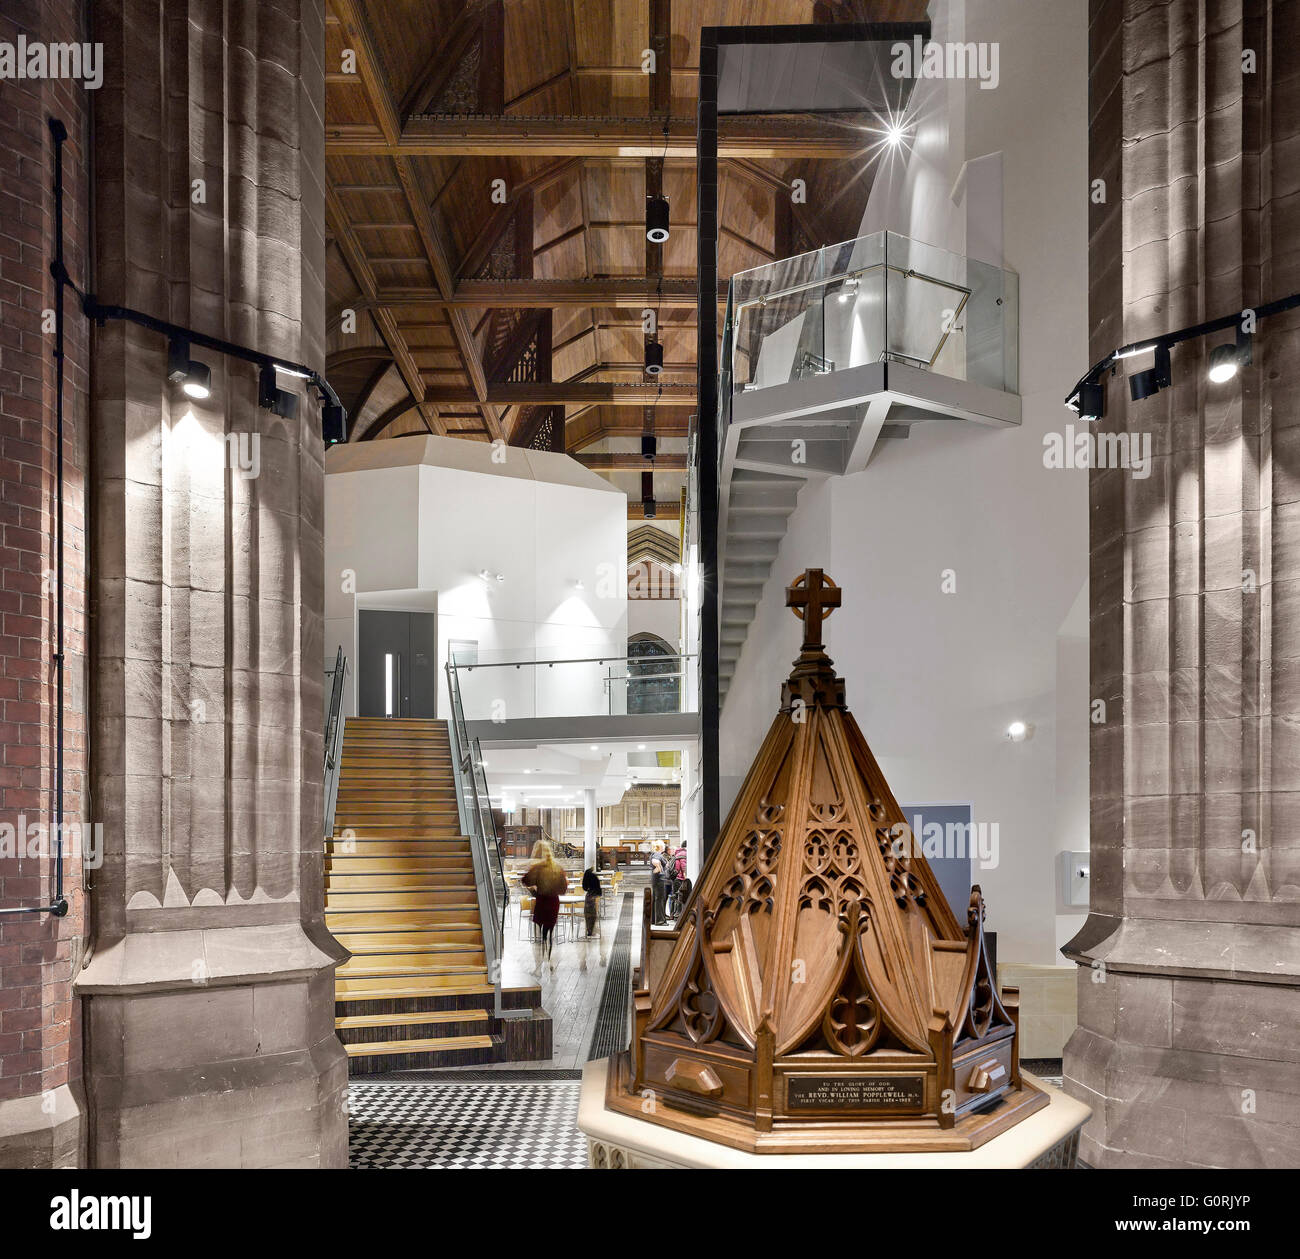 All Souls, Bolton, England. View of a model spire and contemporary interior of the church. - Stock Image